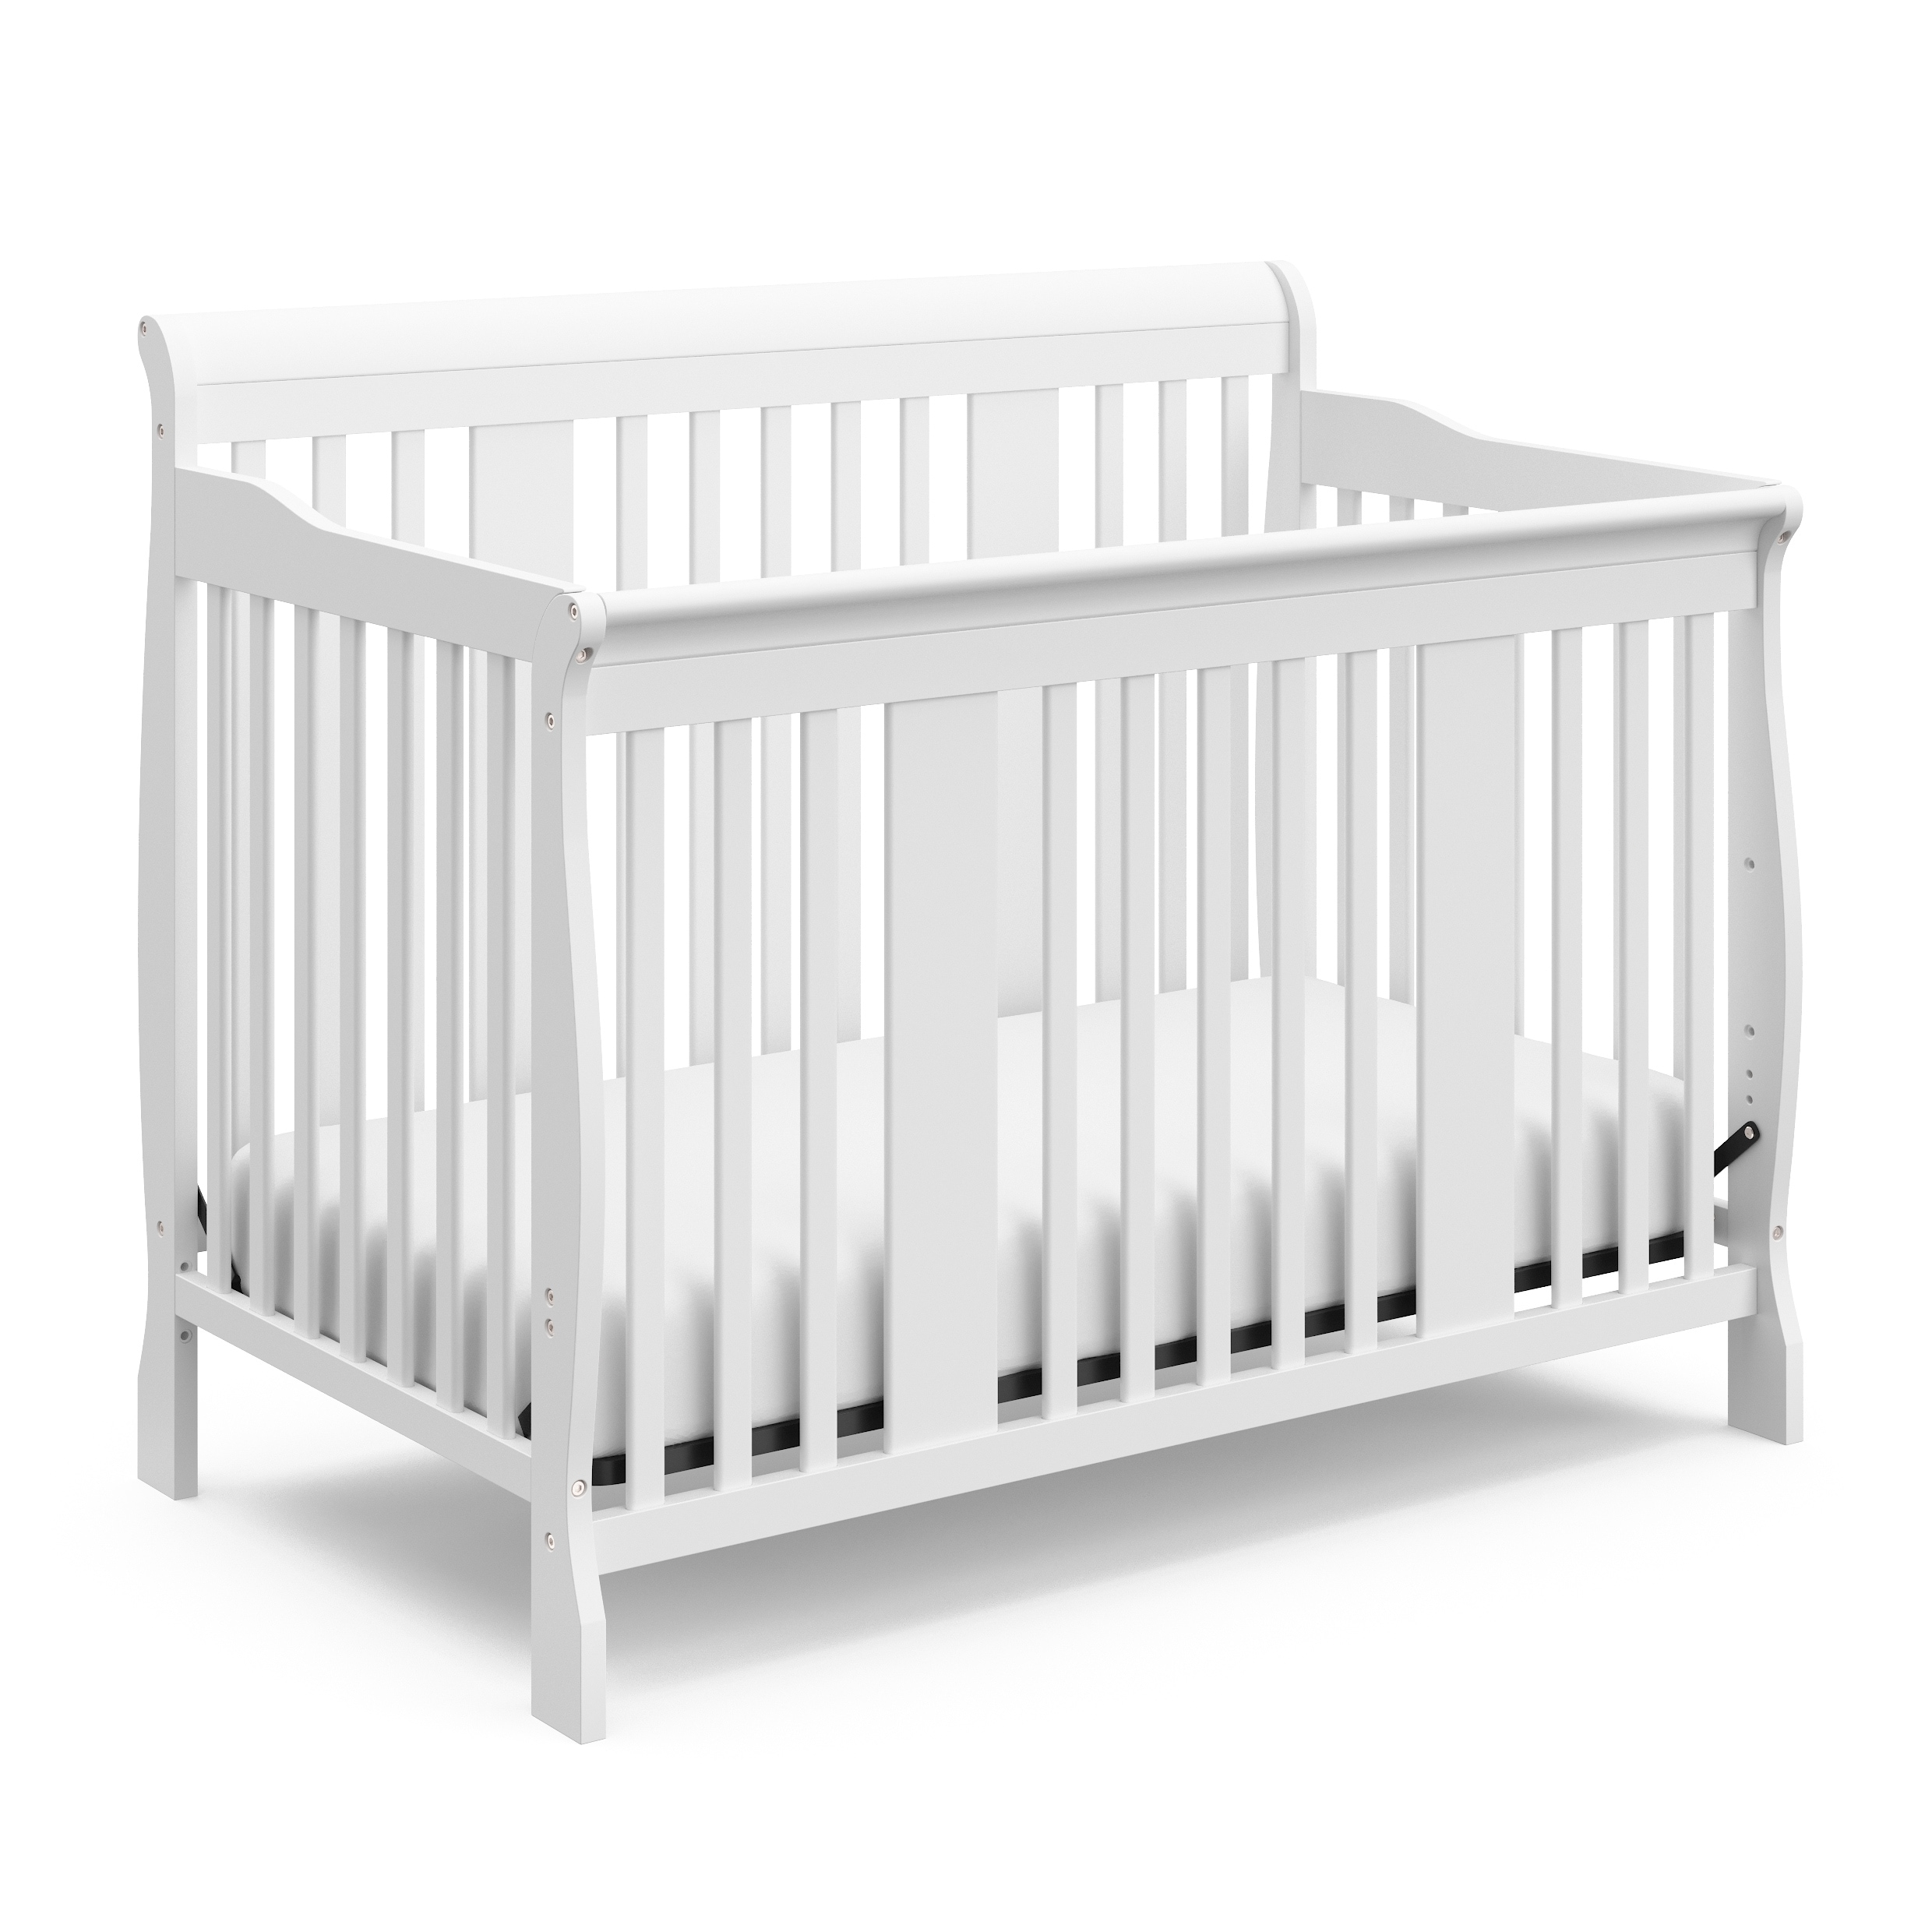 Shop Storkcraft Tuscany 4 In 1 Convertible Crib Converts To Toddler Bed Daybed And Full Size Bed 3 Adjustable Mattress Heights Overstock 23507884